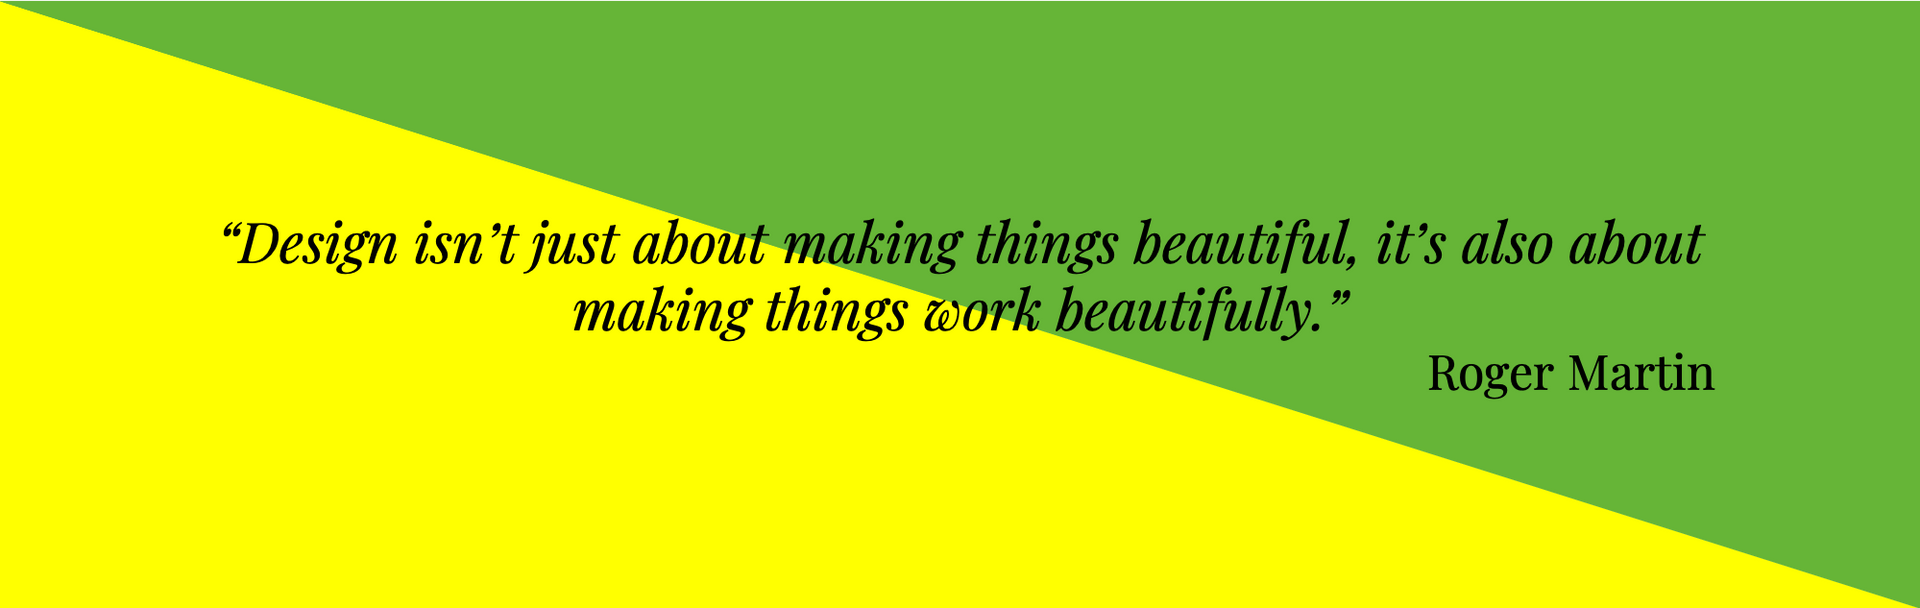 """Design isn't just about making things beautiful, it's also about making things work beautifully.""  Roger Martin"